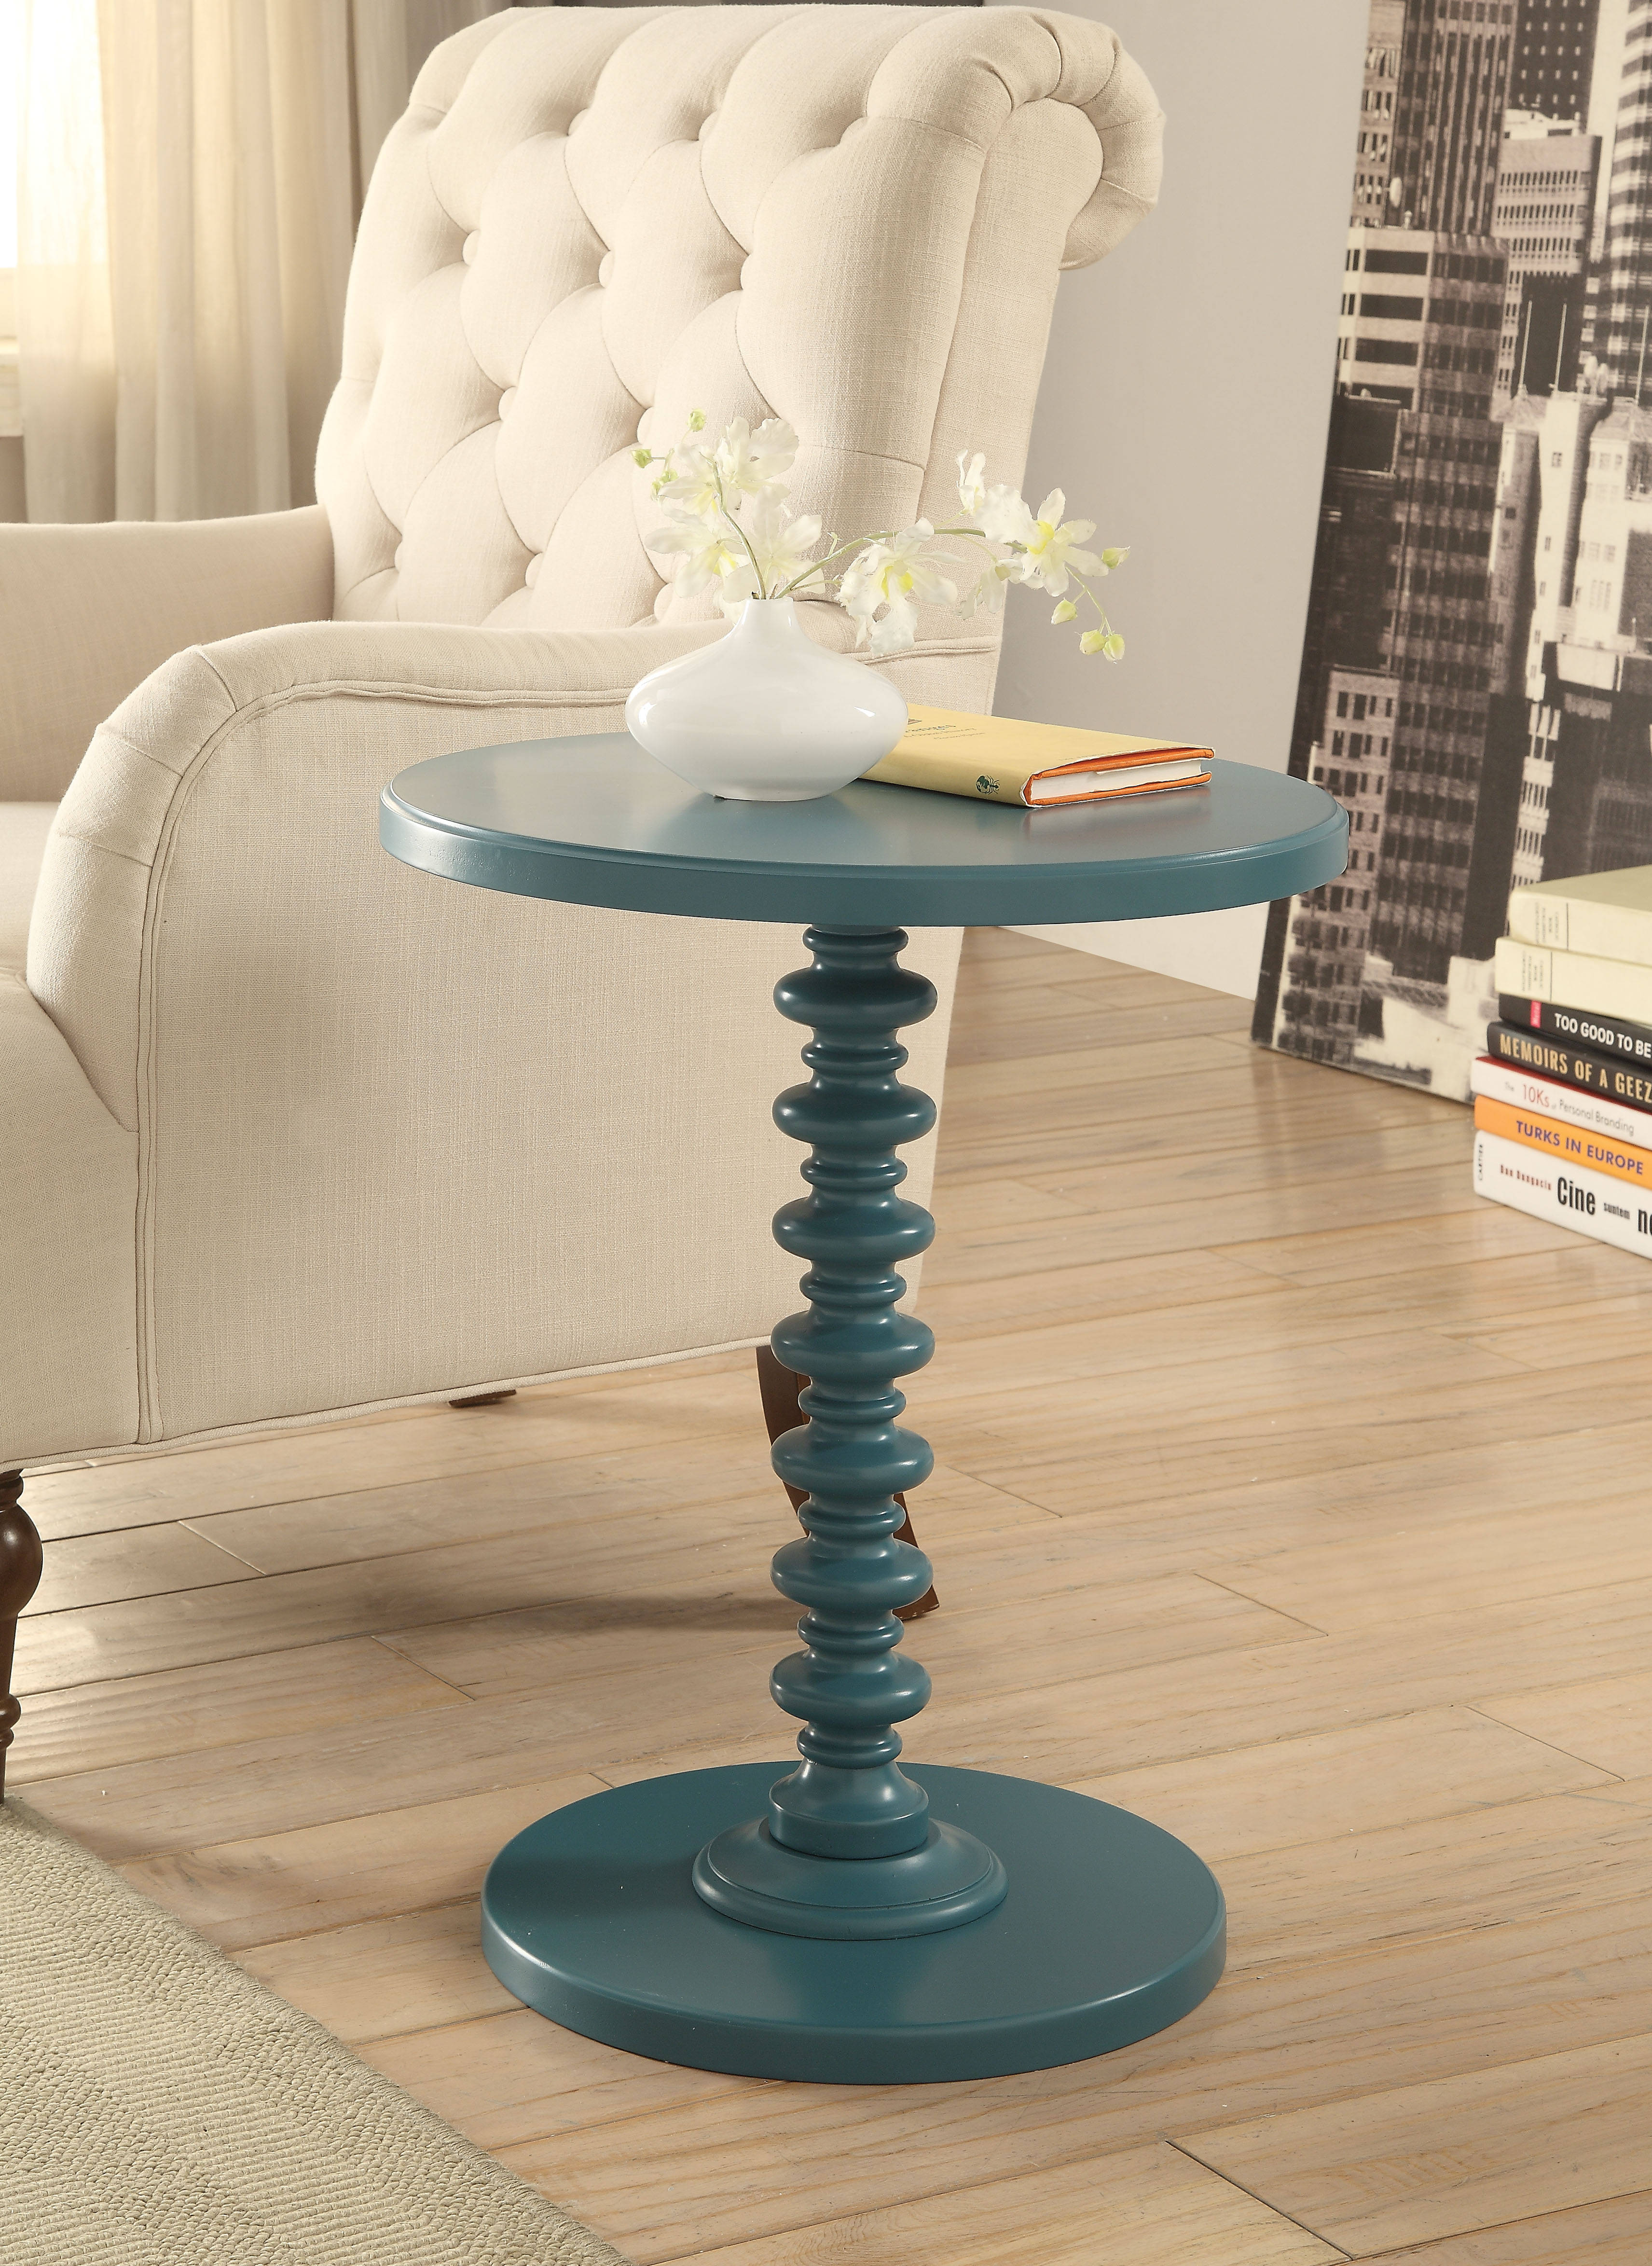 Acme Furniture Acton Teal Round Spindle Side Table The Cly Home